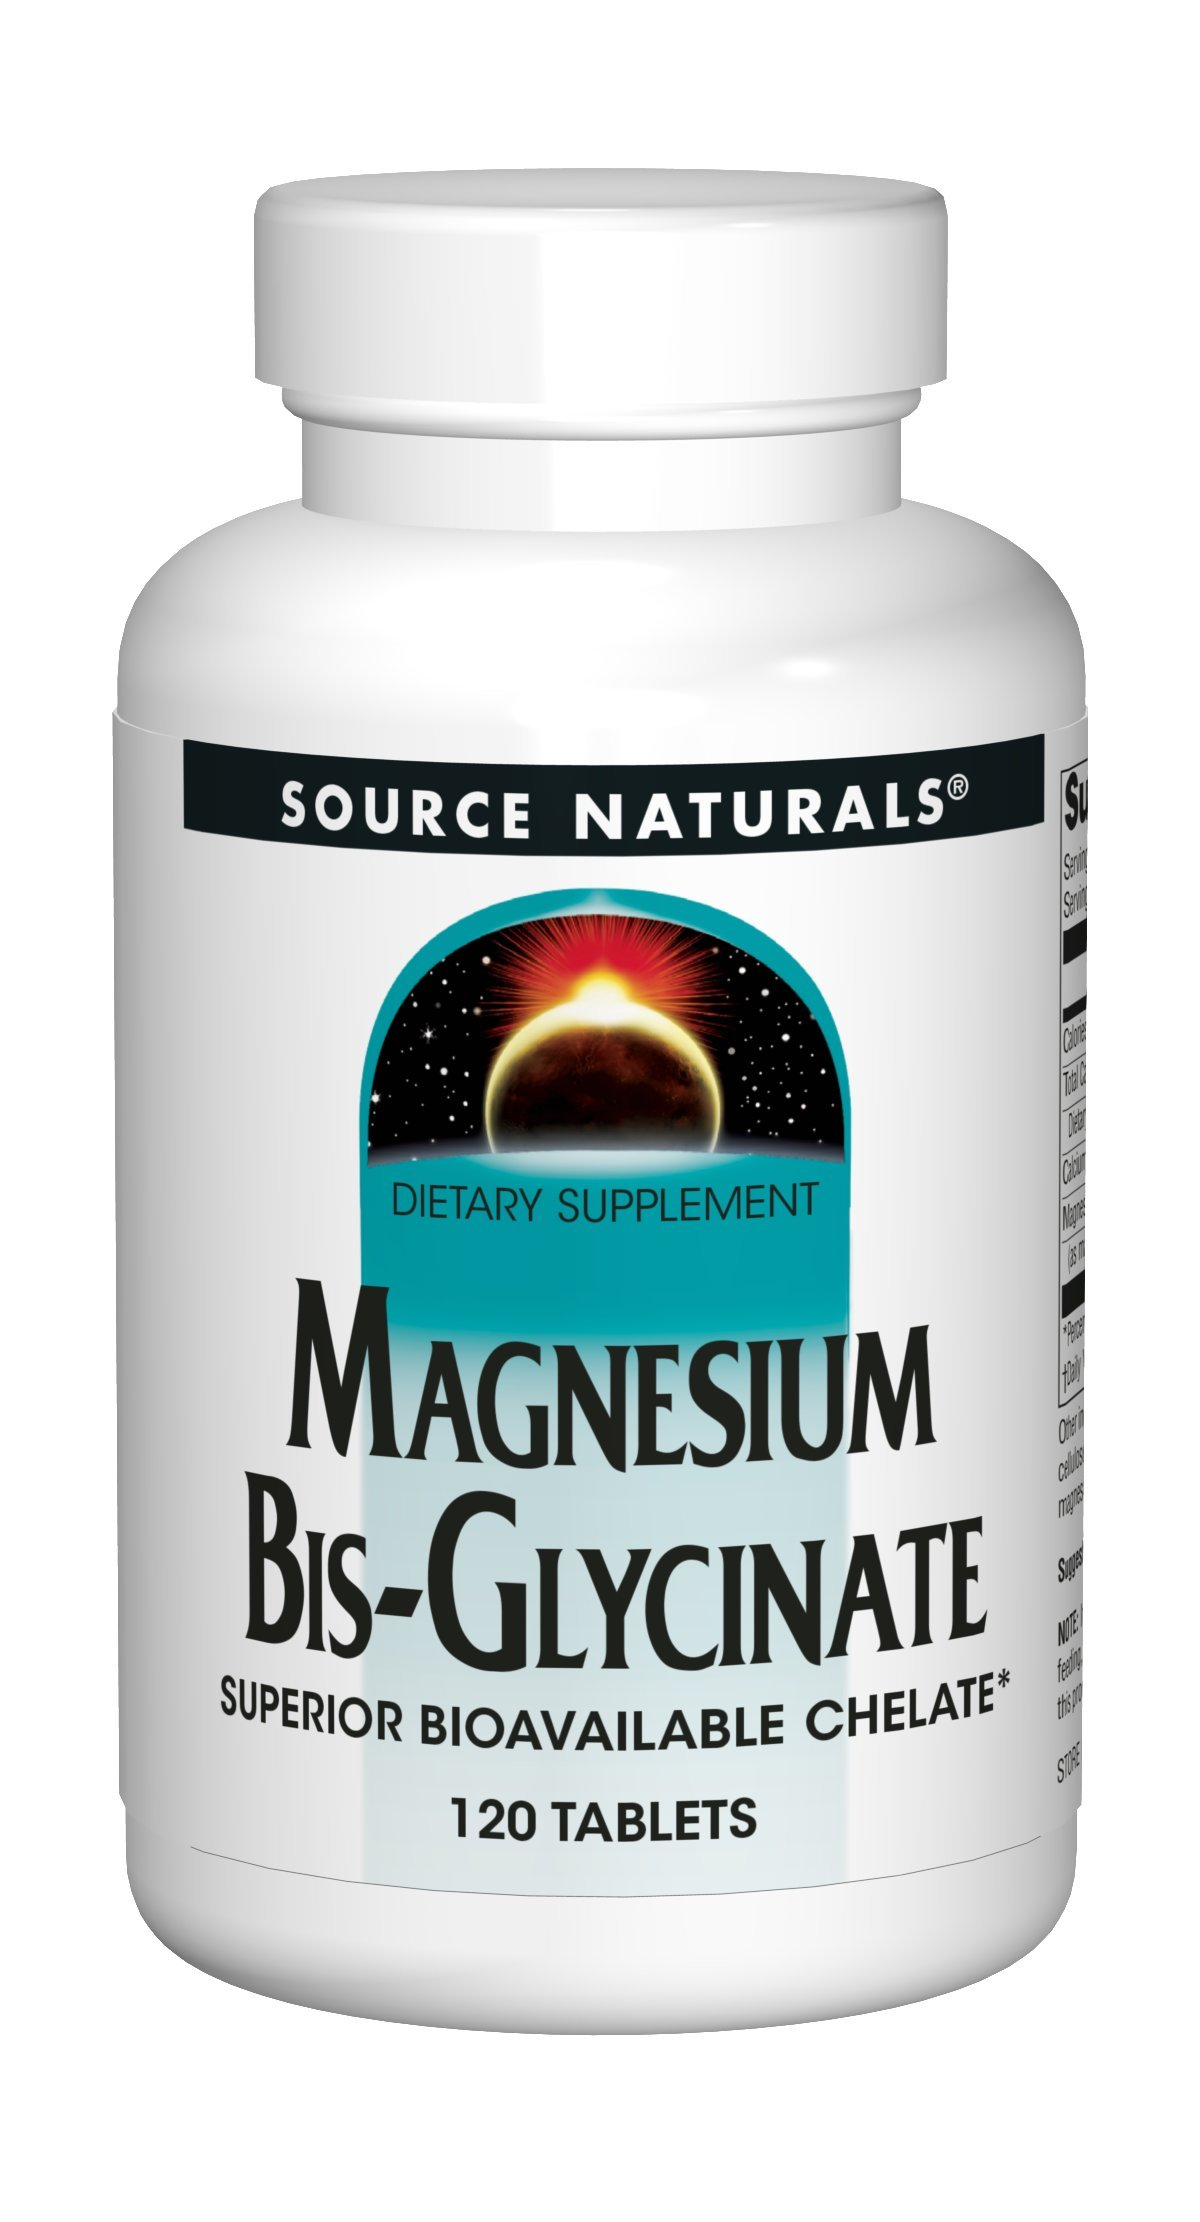 Source Naturals Magnesium Bis-Glycinate - 120 Tablets